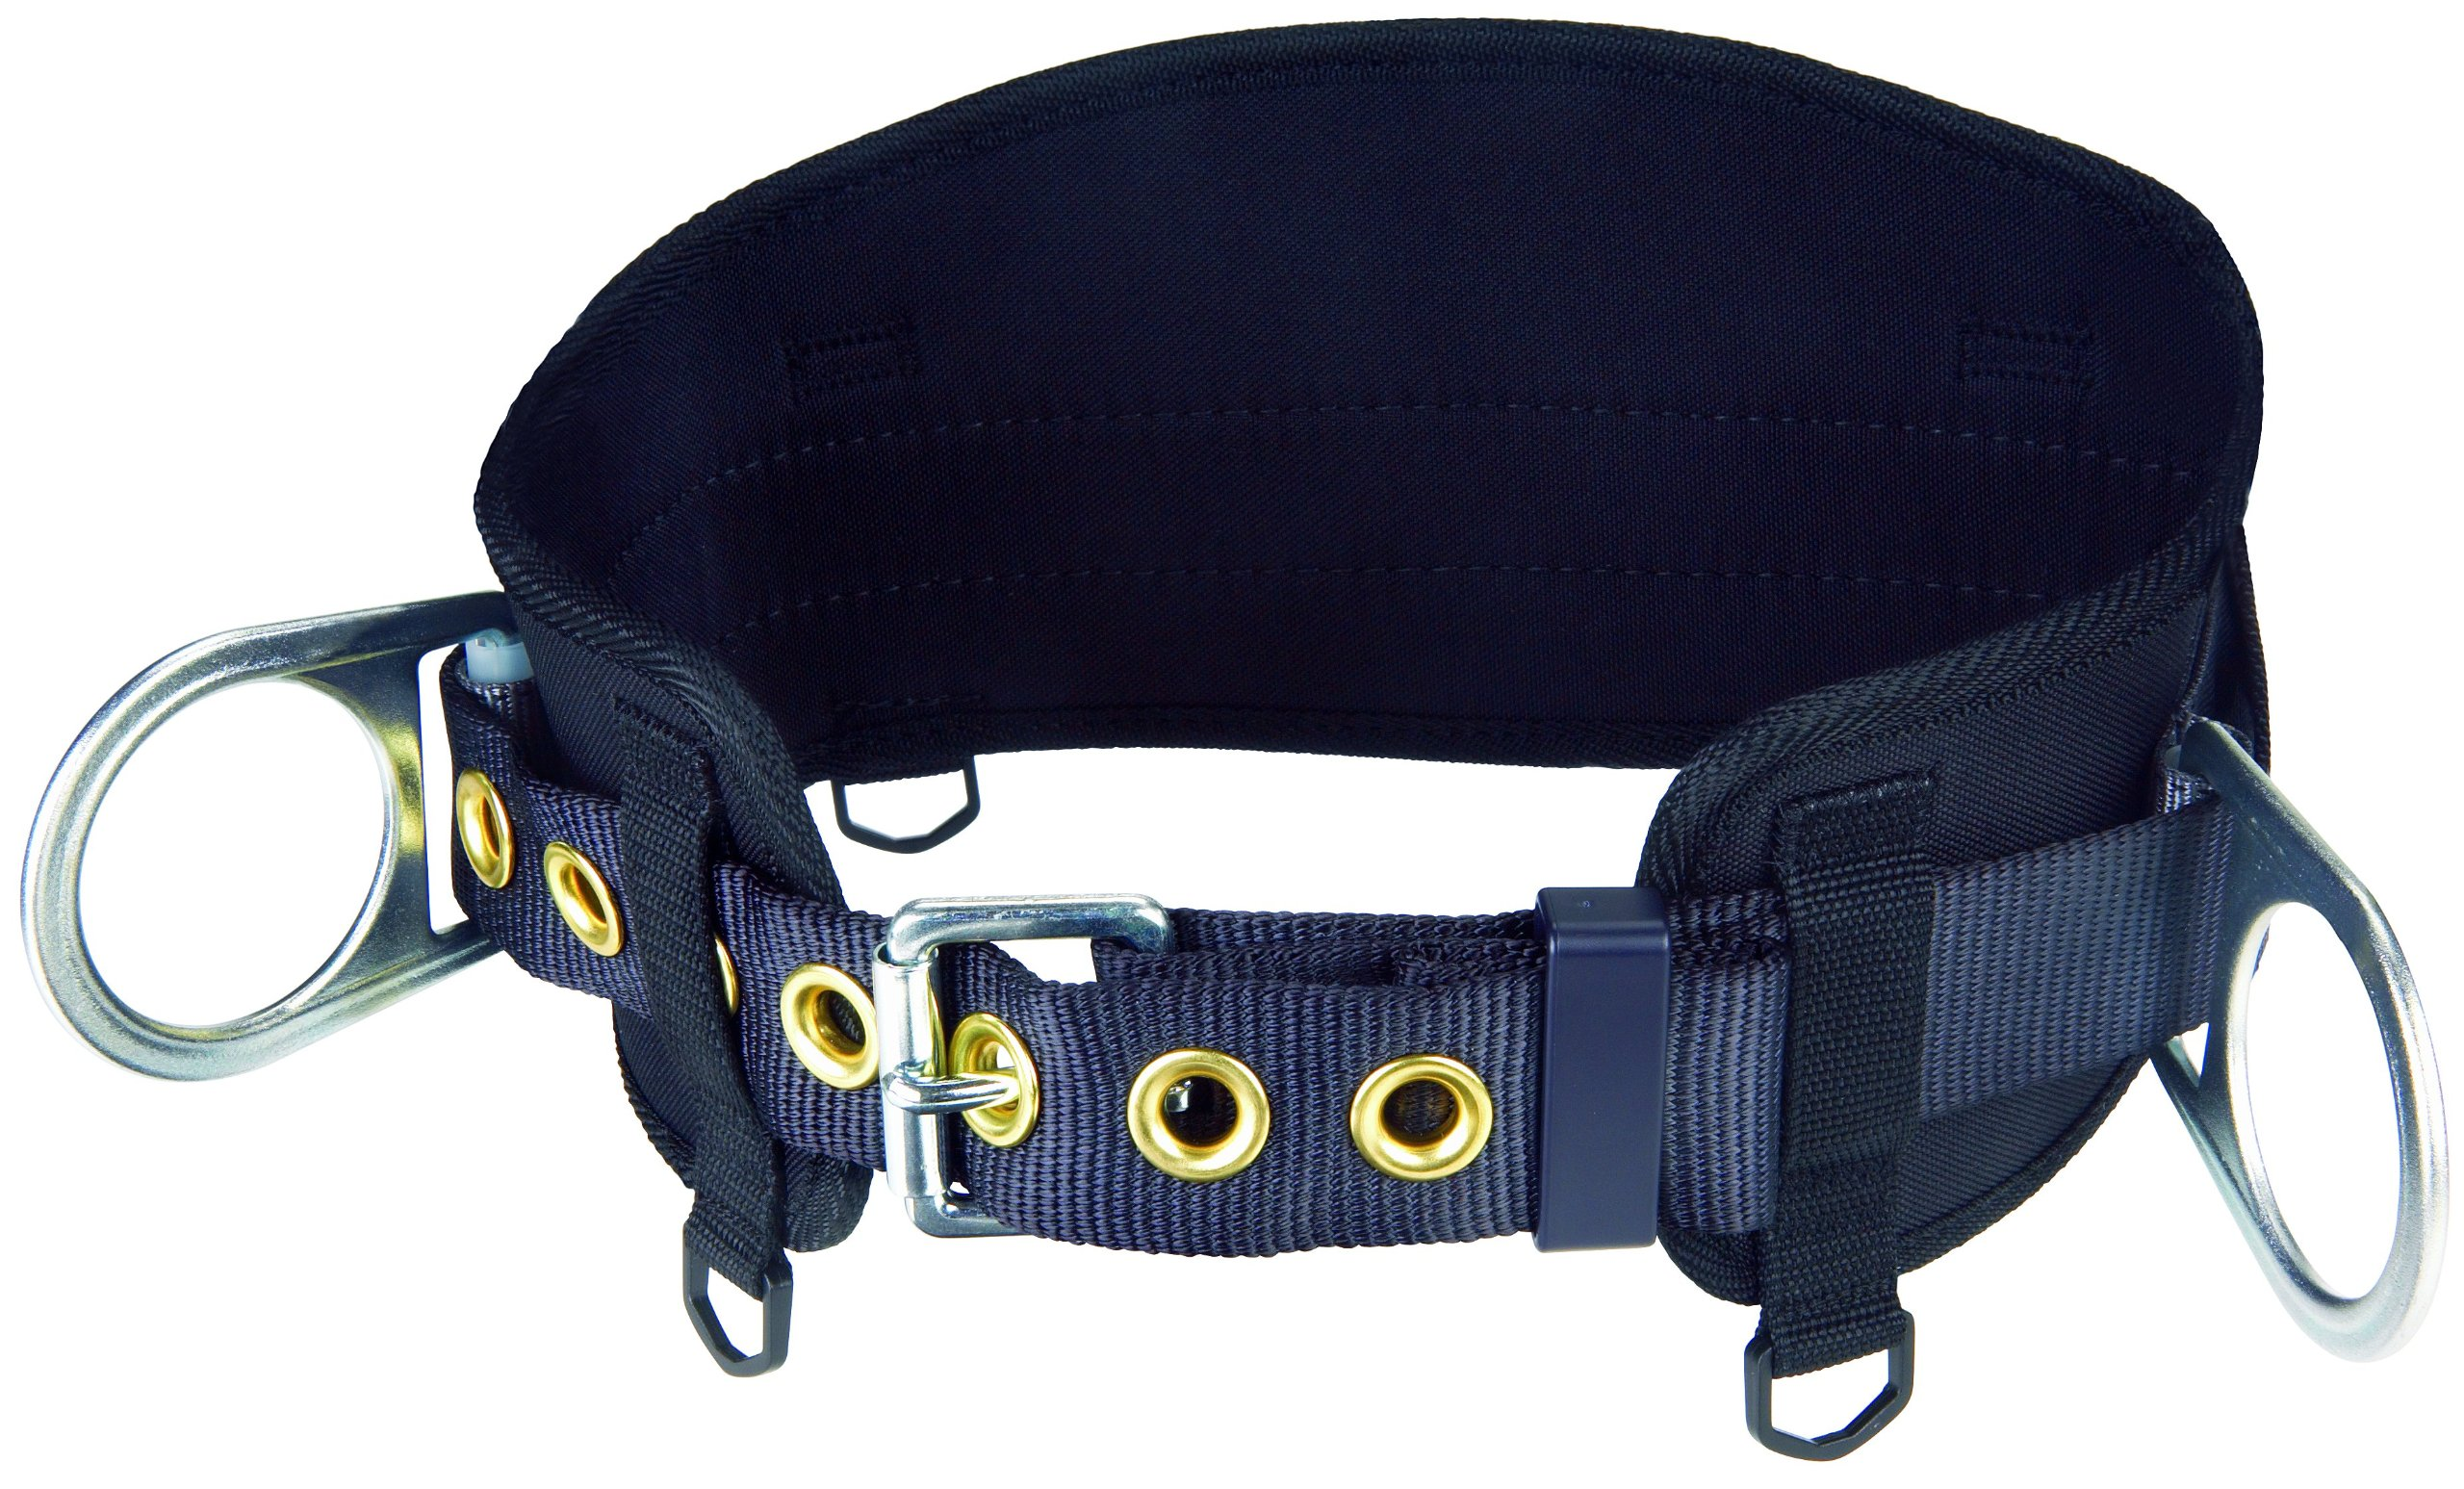 3M Protecta PRO 1091015 Body Belt with Hip Pad, 2 D-Rings, X-Large, Black